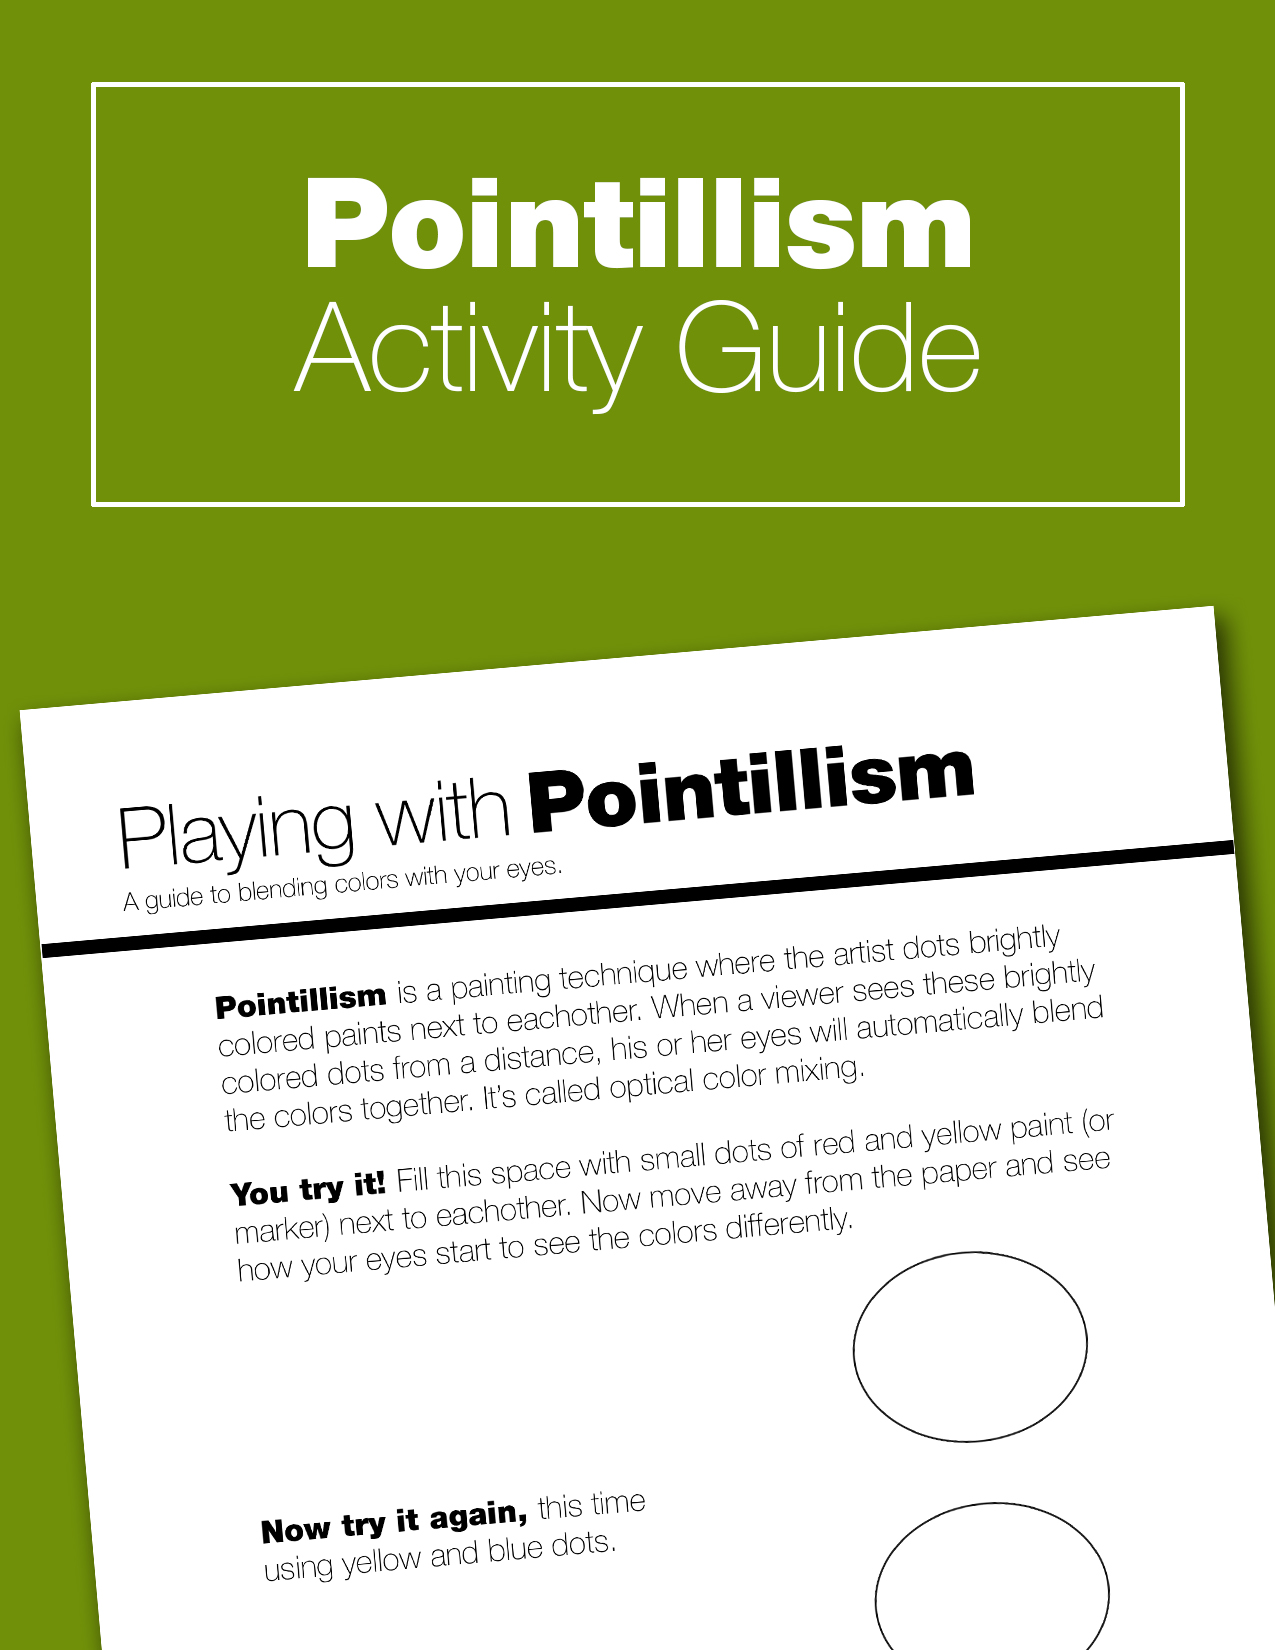 Learn through play! Explore the art of Georges Seurat, and create your own hands on painting with this pom pom pointillism activity guide.